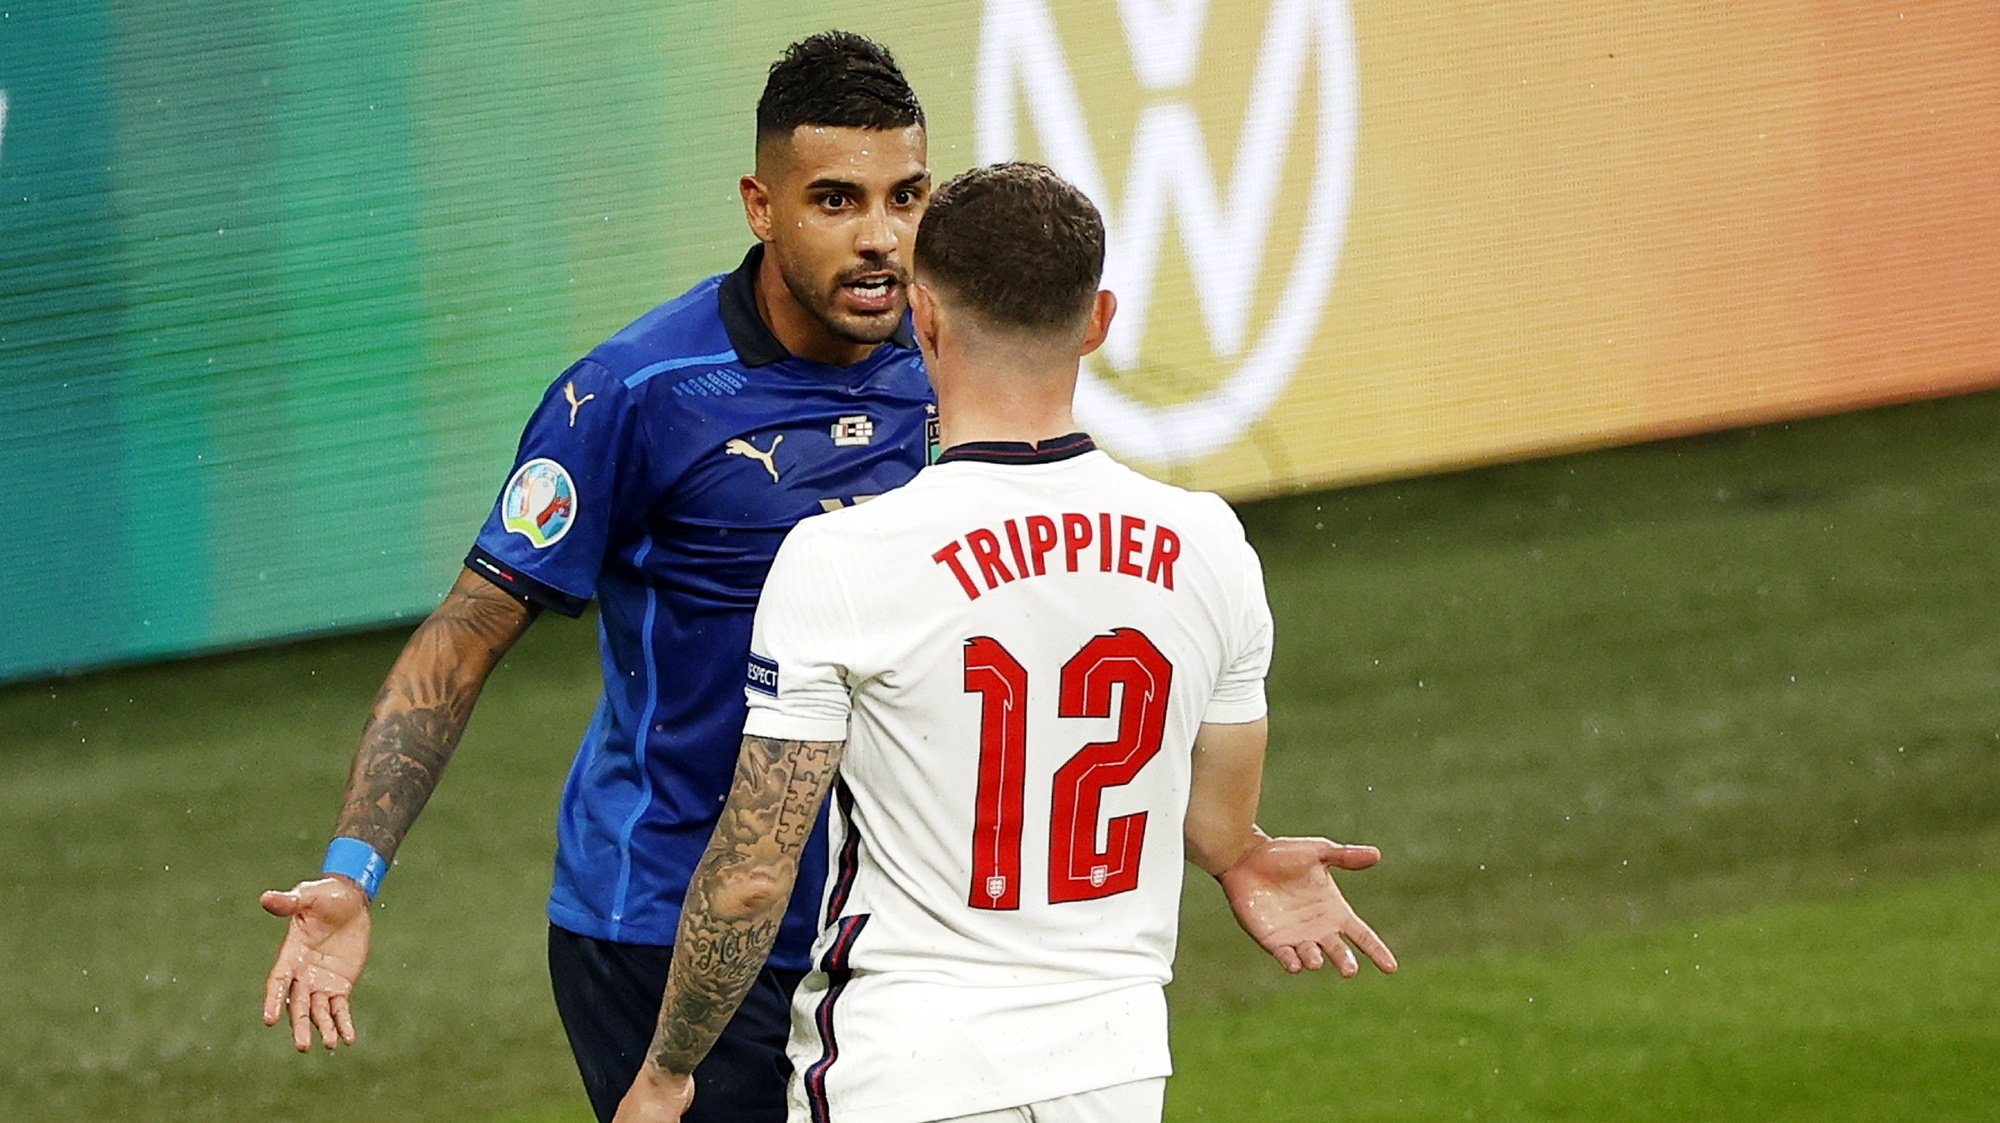 epa09338461 Emerson (L) of Italy talks to Kieran Trippier of England during the UEFA EURO 2020 final between Italy and England in London, Britain, 11 July 2021.  EPA/John Sibley / POOL (RESTRICTIONS: For editorial news reporting purposes only. Images must appear as still images and must not emulate match action video footage. Photographs published in online publications shall have an interval of at least 20 seconds between the posting.)